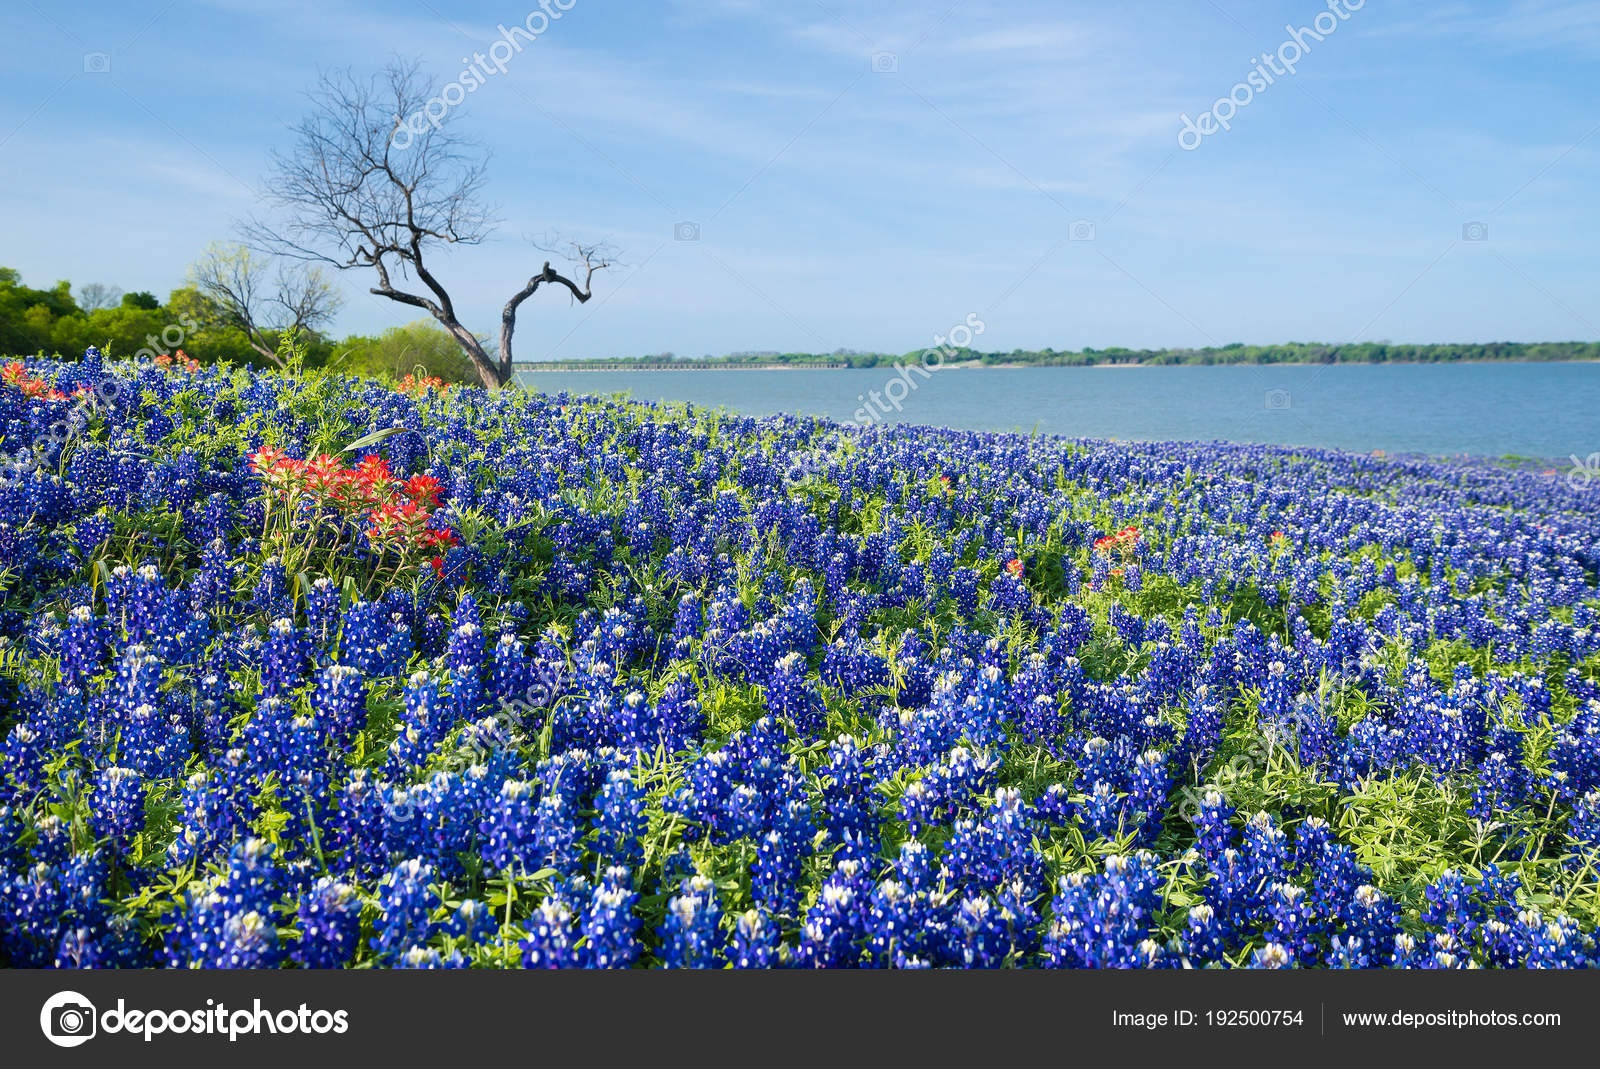 Texas Bluebonnets Blooming By A Lake In Spring Stock Photo